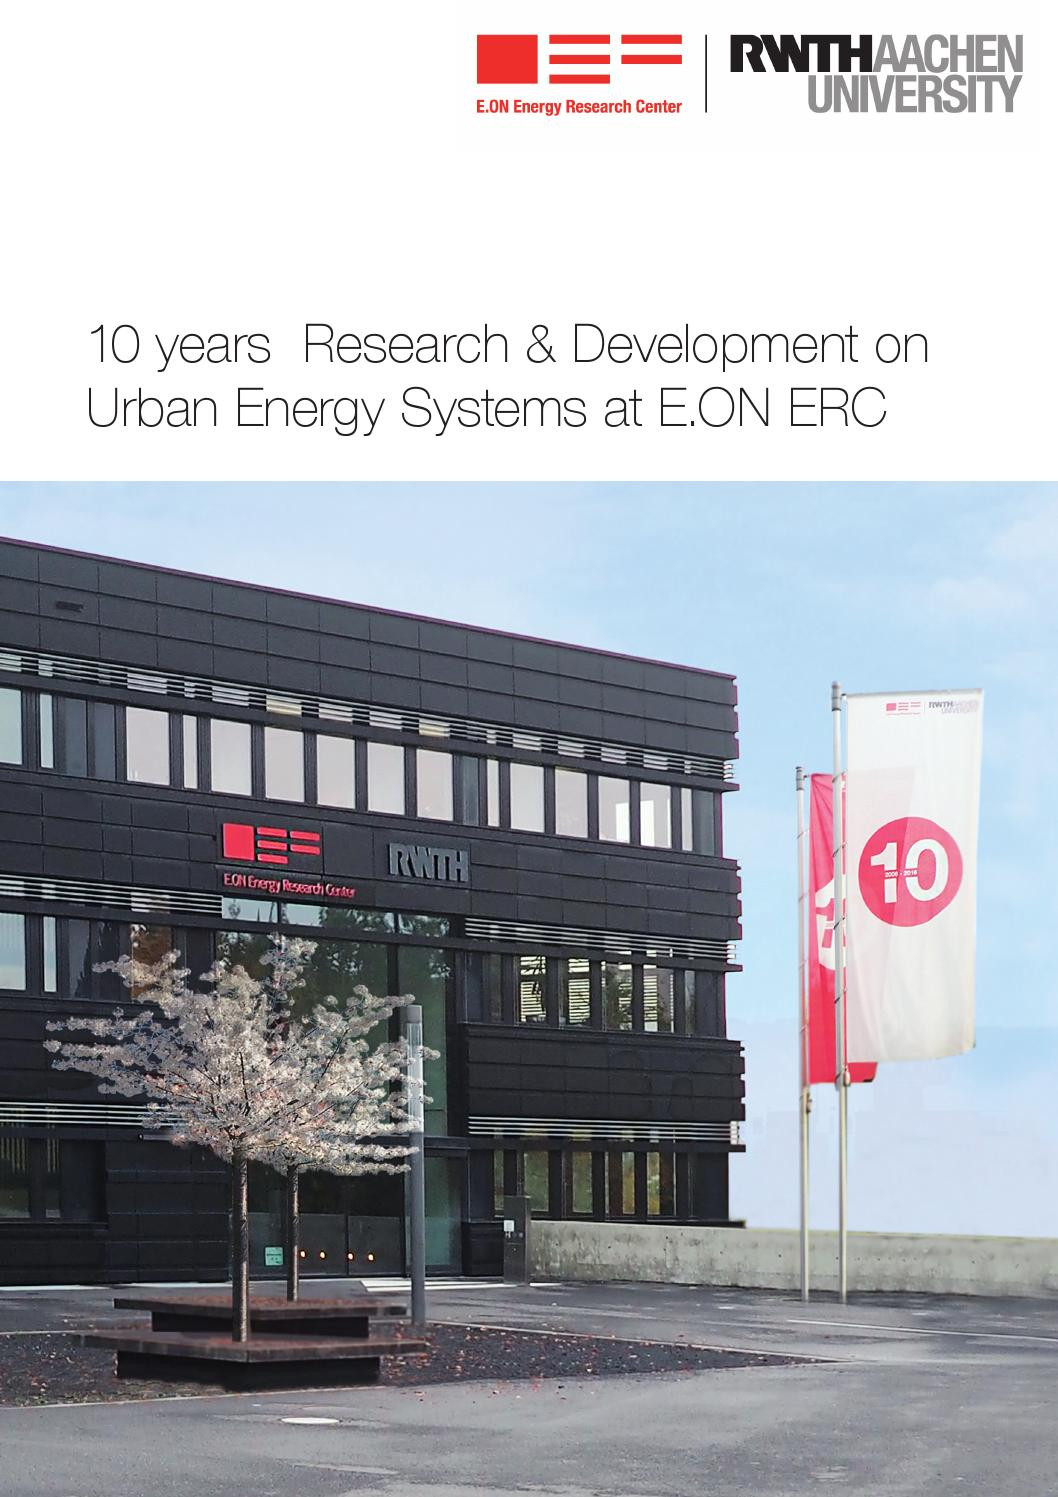 Utah Retirement Systems Great 10 Years Research & Development On Urban Energy Systems at E